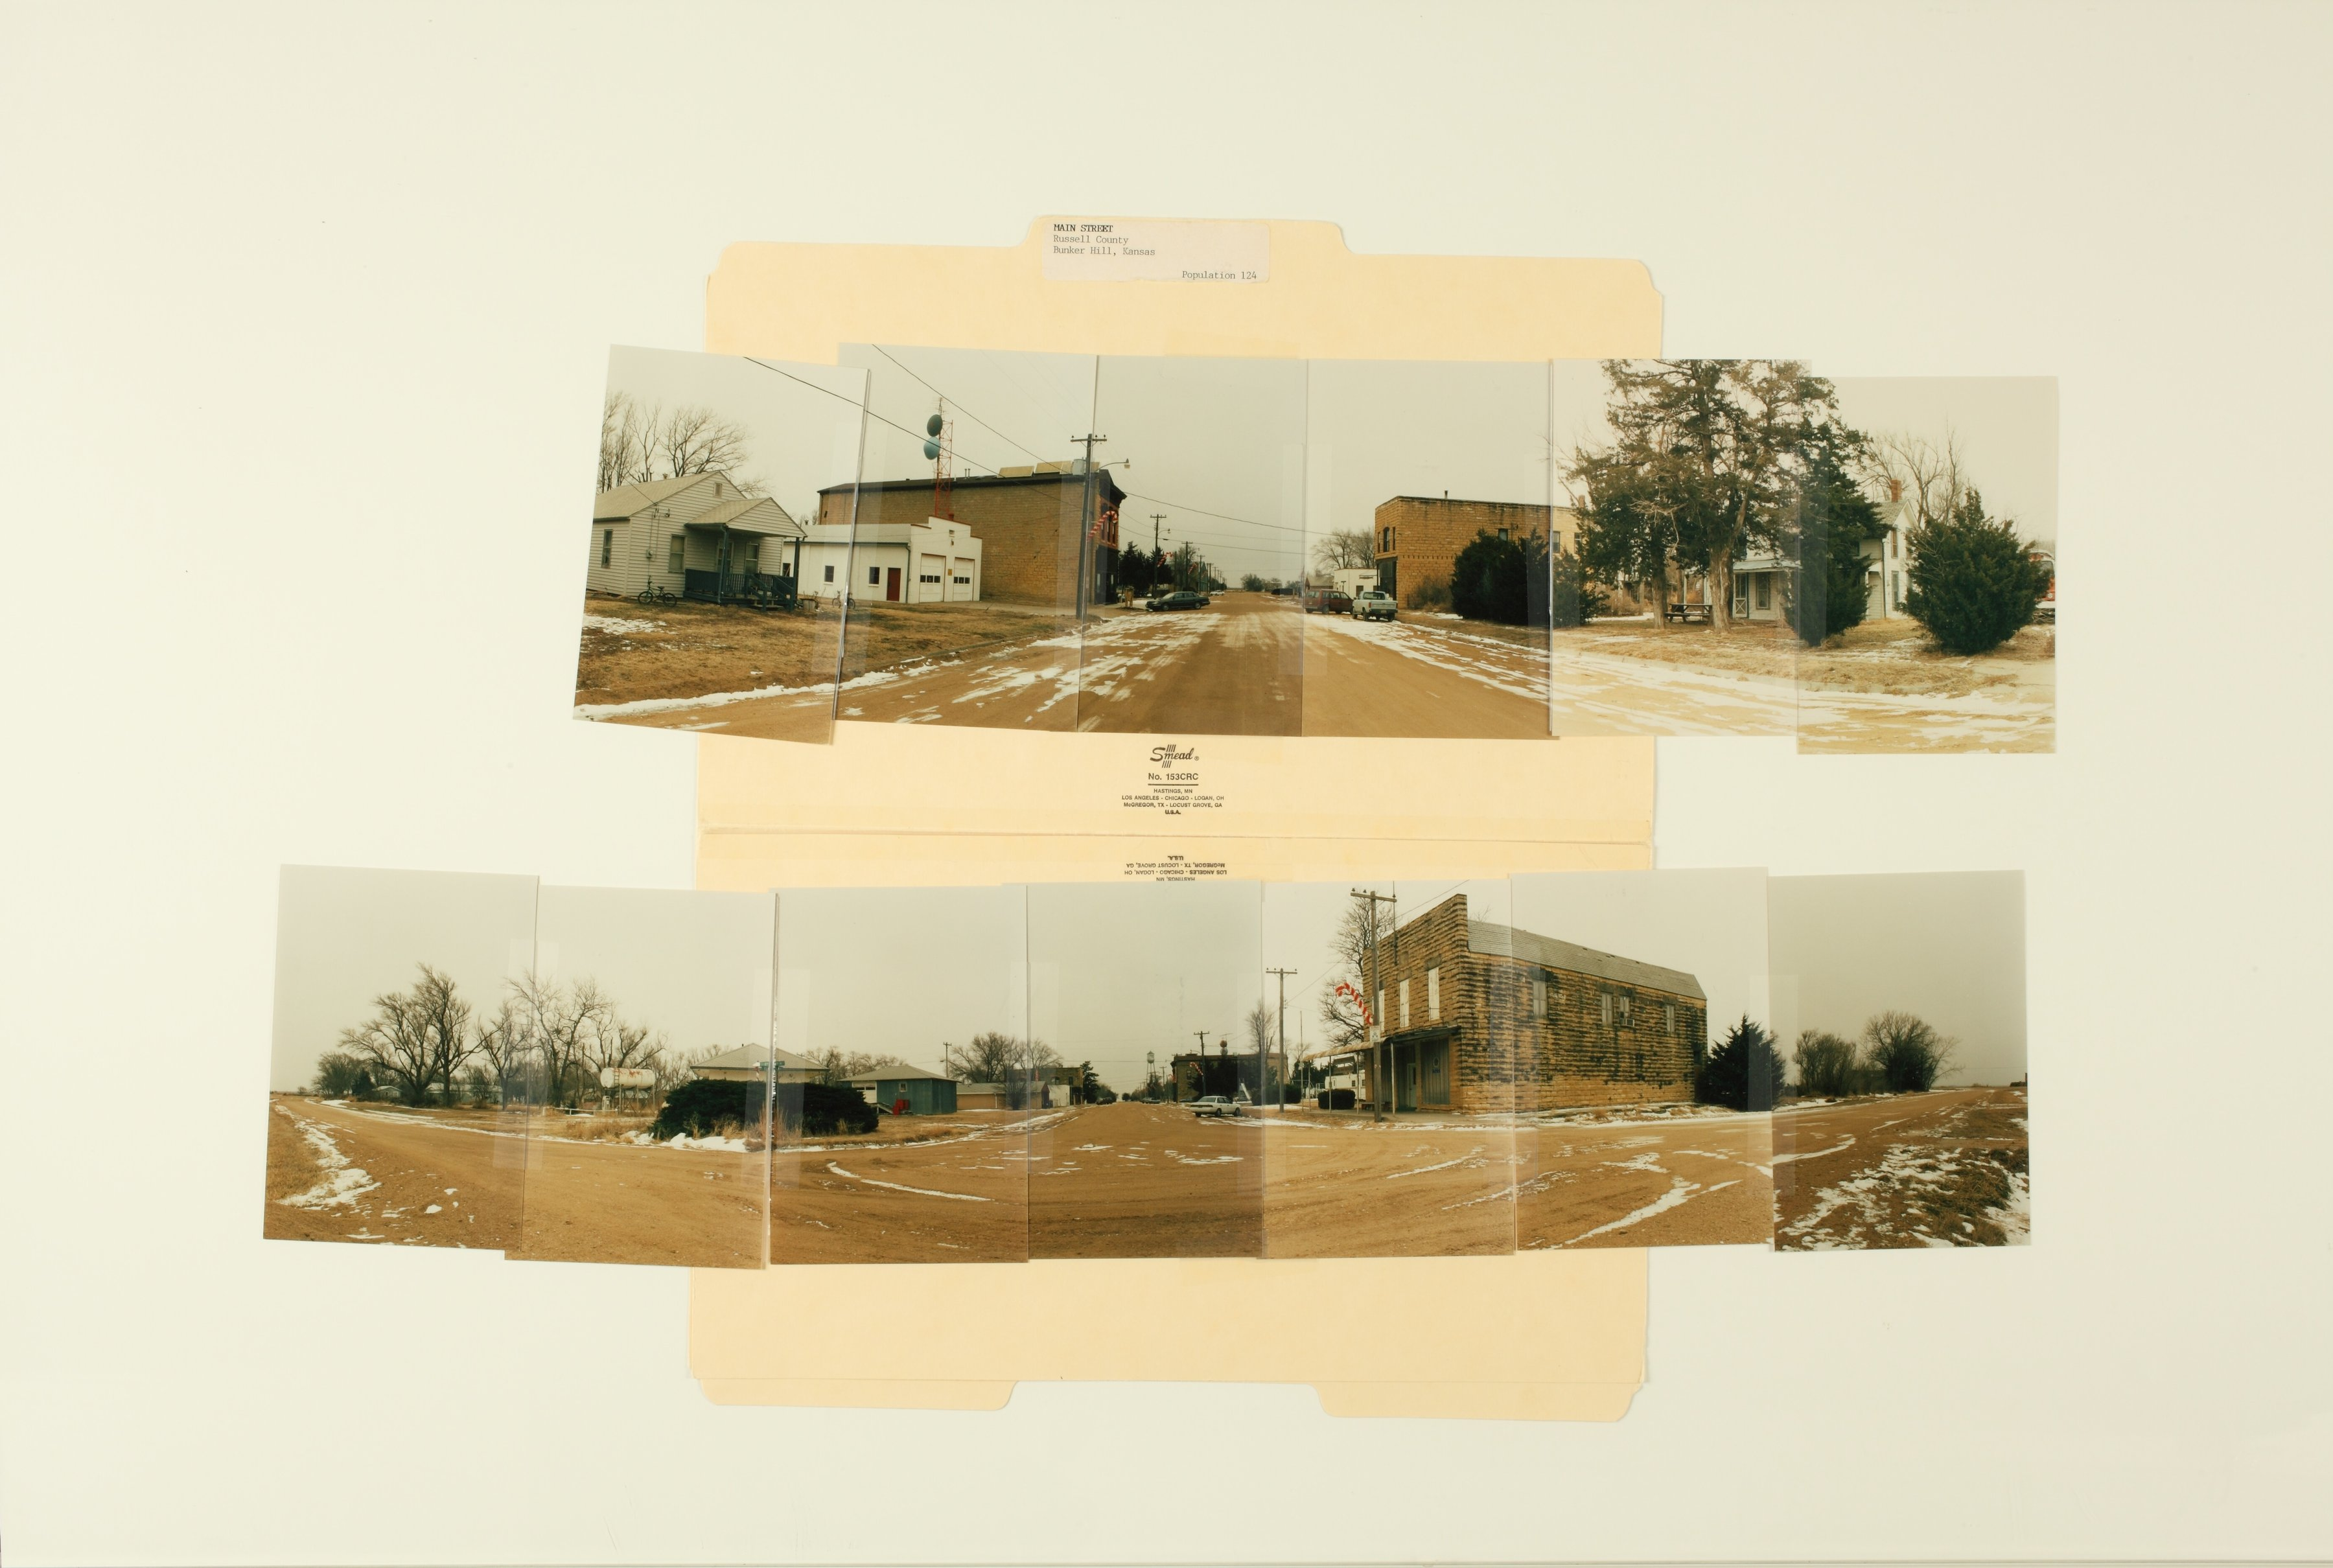 Kansas Film Commission site photographs, towns Ada - Bunker Hill - 245